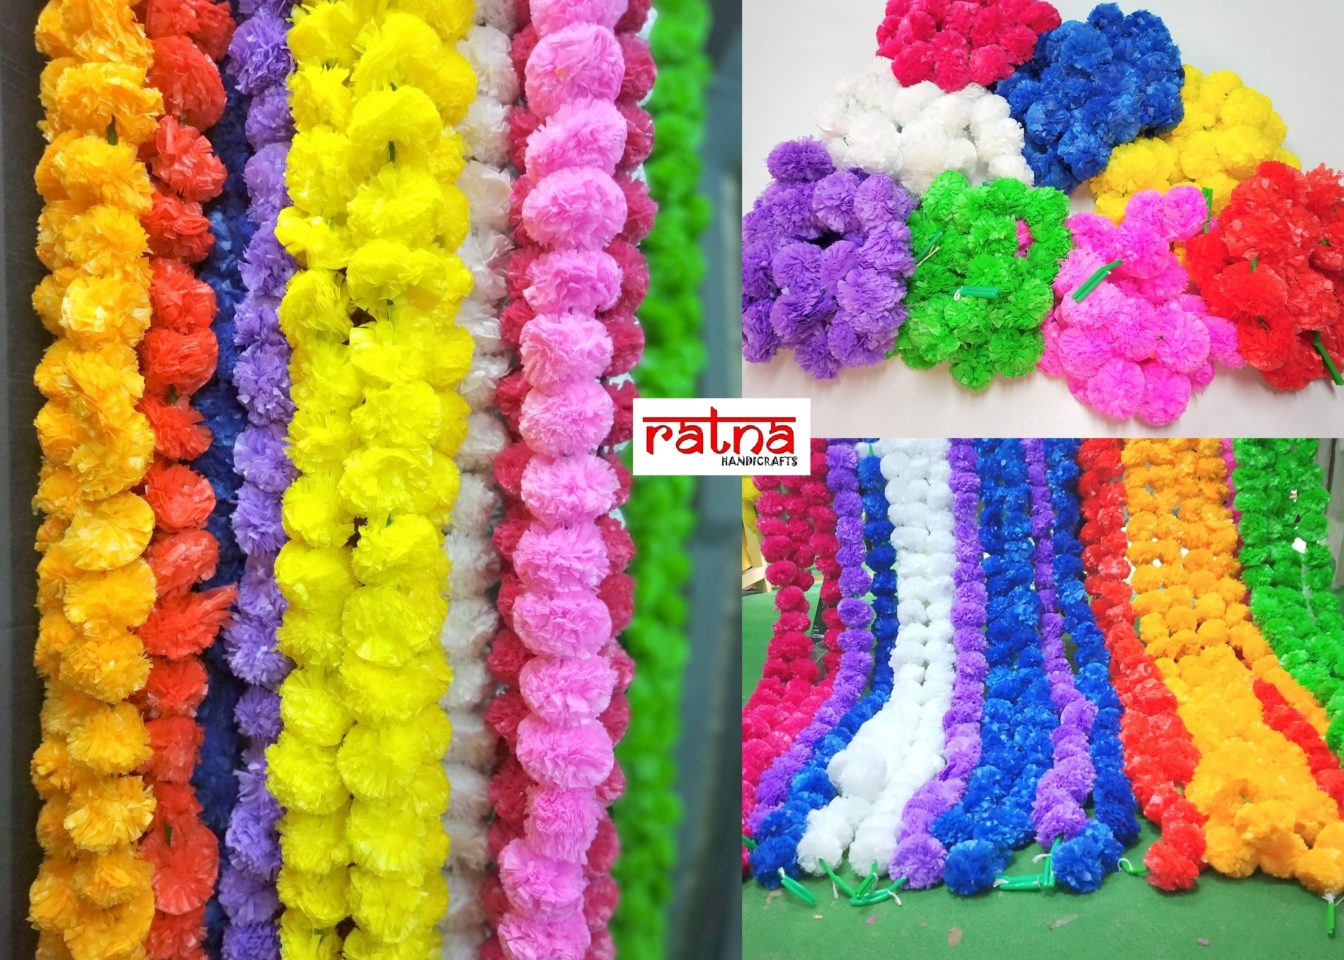 Ratna Handicrafts | Providers of best Hand Mades of India